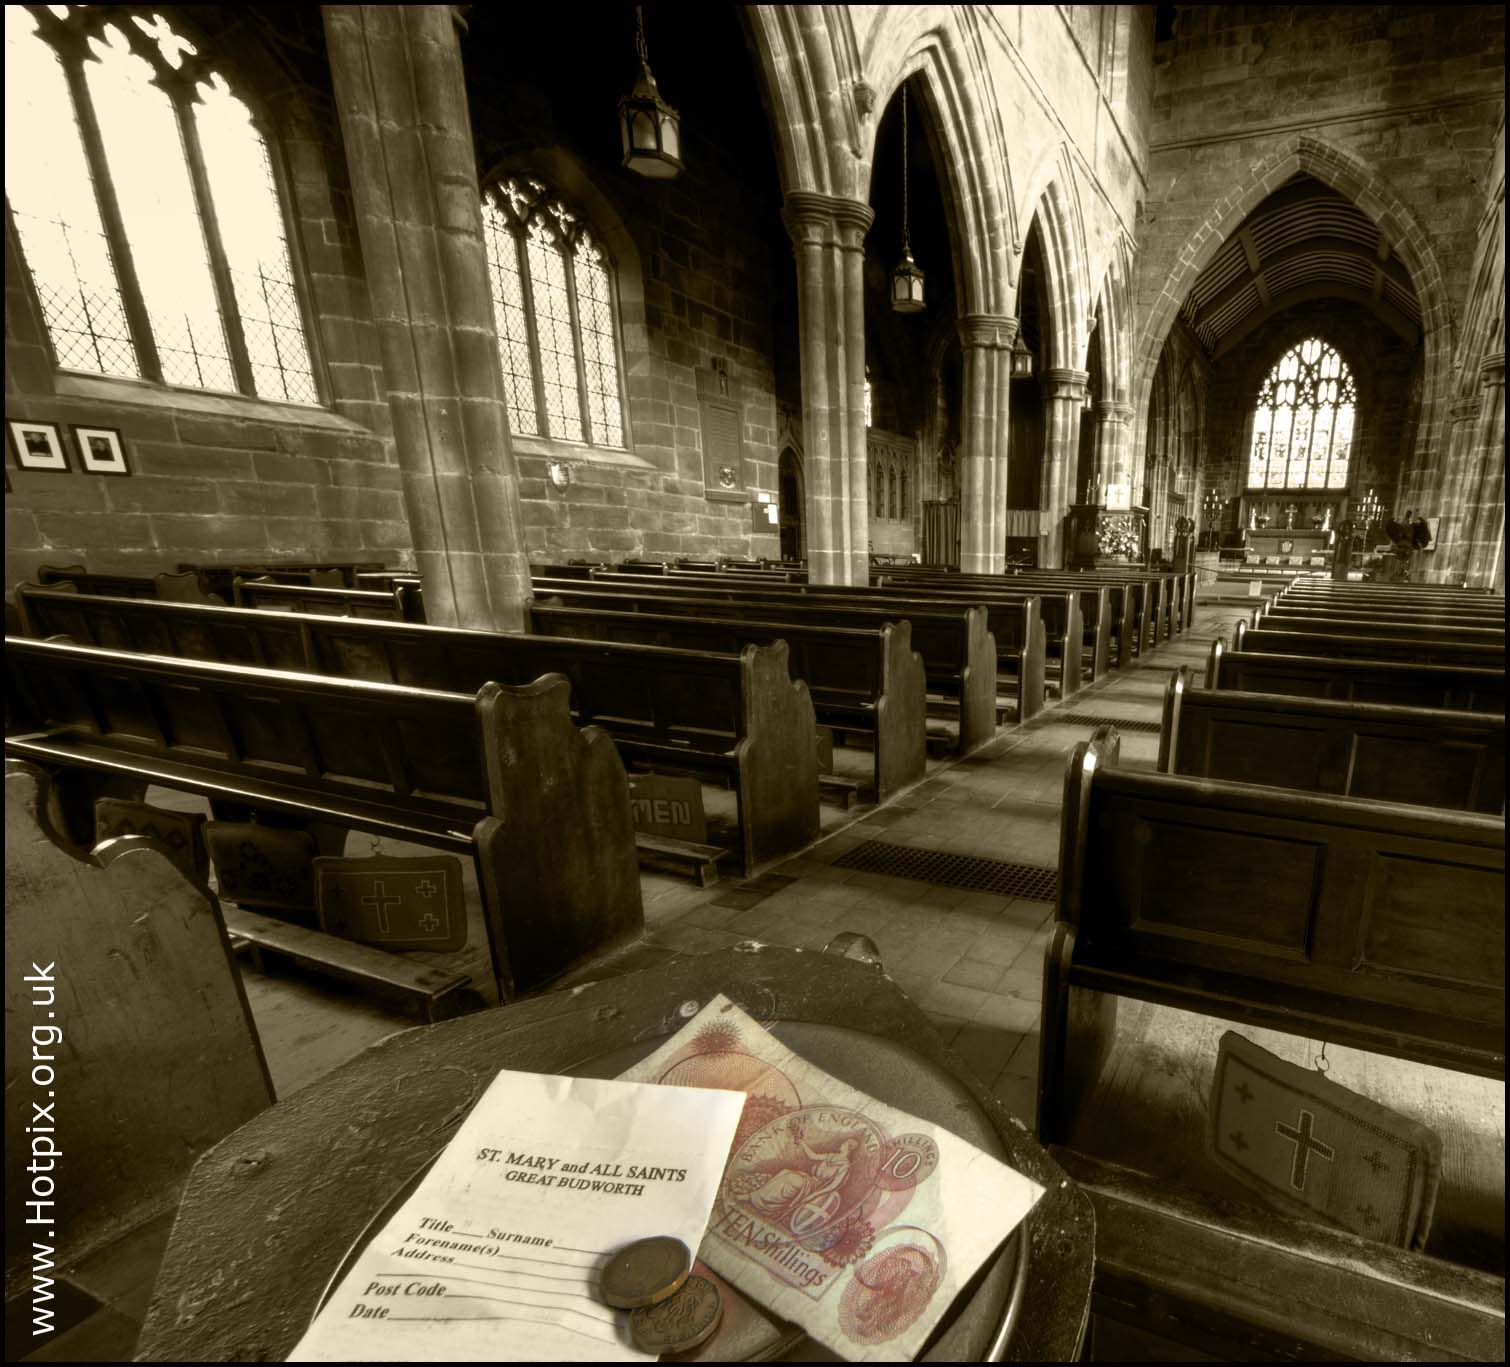 church,collection,plate,coins,notes,pound,money,ten,shilling,note,wide,angle,tripod,sepia,black,white,monochrome,selective,colour,old,three,penny,bit,3D,thripney,biy,threepenny,envelope,great,budworth,st,marys,cheshire,northwich,england,uk,gb,hotpix,tonysmith,tony,smith,LRPS,thrippence 3D 50p   thripp'nce,thrupp'nce,threpp'nce  thripp'ny bit  thrupp'ny bit,threpp'nce,thripp'ny,thrupp'ny bit,50p,50pence,B/W,mono,partial,mixed,color,HDR,high dynamic range,interior,inside,stuff,12-24,sigma,wide angle lens,building,buildings,built,architecture,selectivo,couleur,s\u00e9lective,vorgew\u00e4hlte,Farbe,sex,sexy